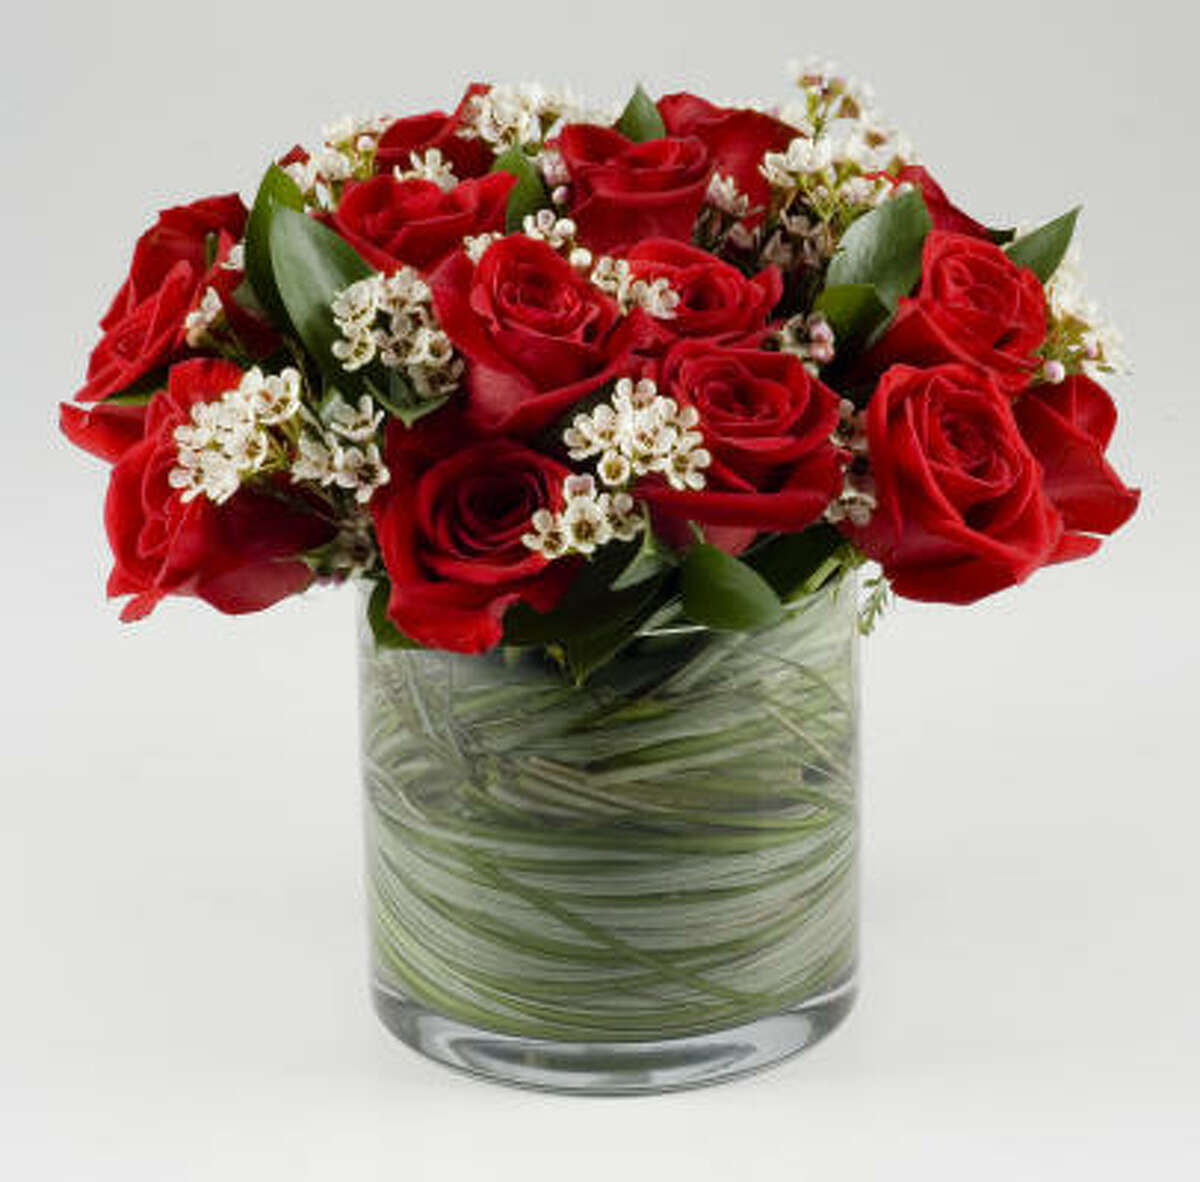 Arrangement of a dozen red roses from The Cutting Garden, in 2008.